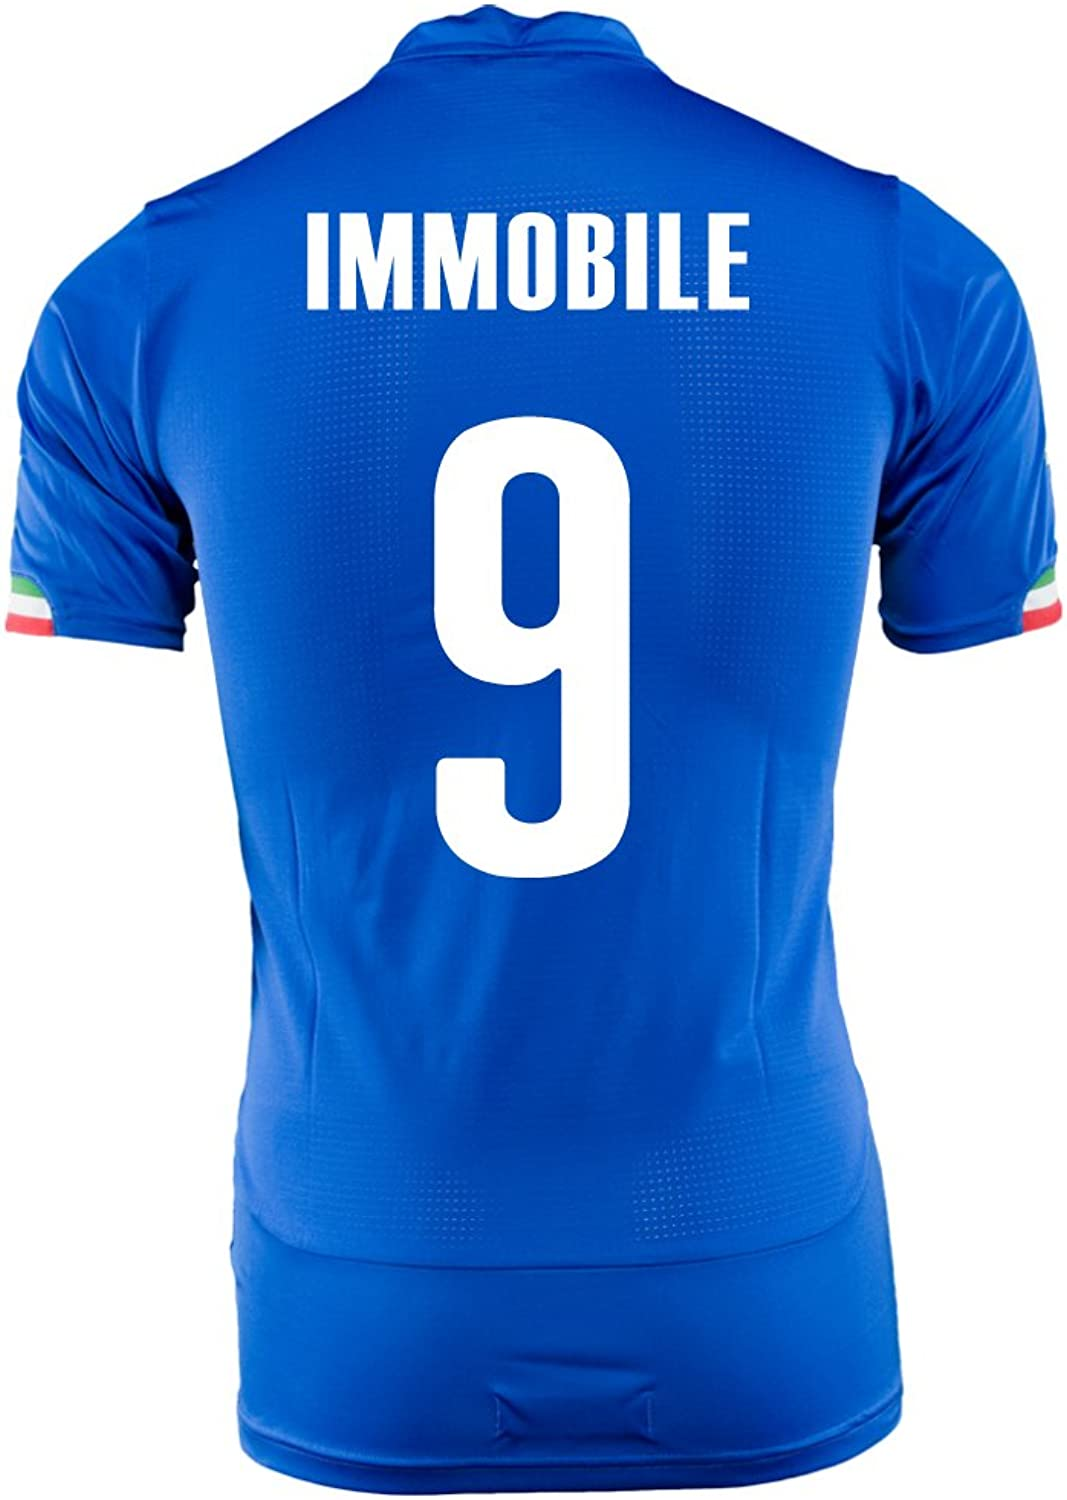 PUMA IMMOBILE  9 ITALY HOME JERSEY WORLD CUP 2014 (M)